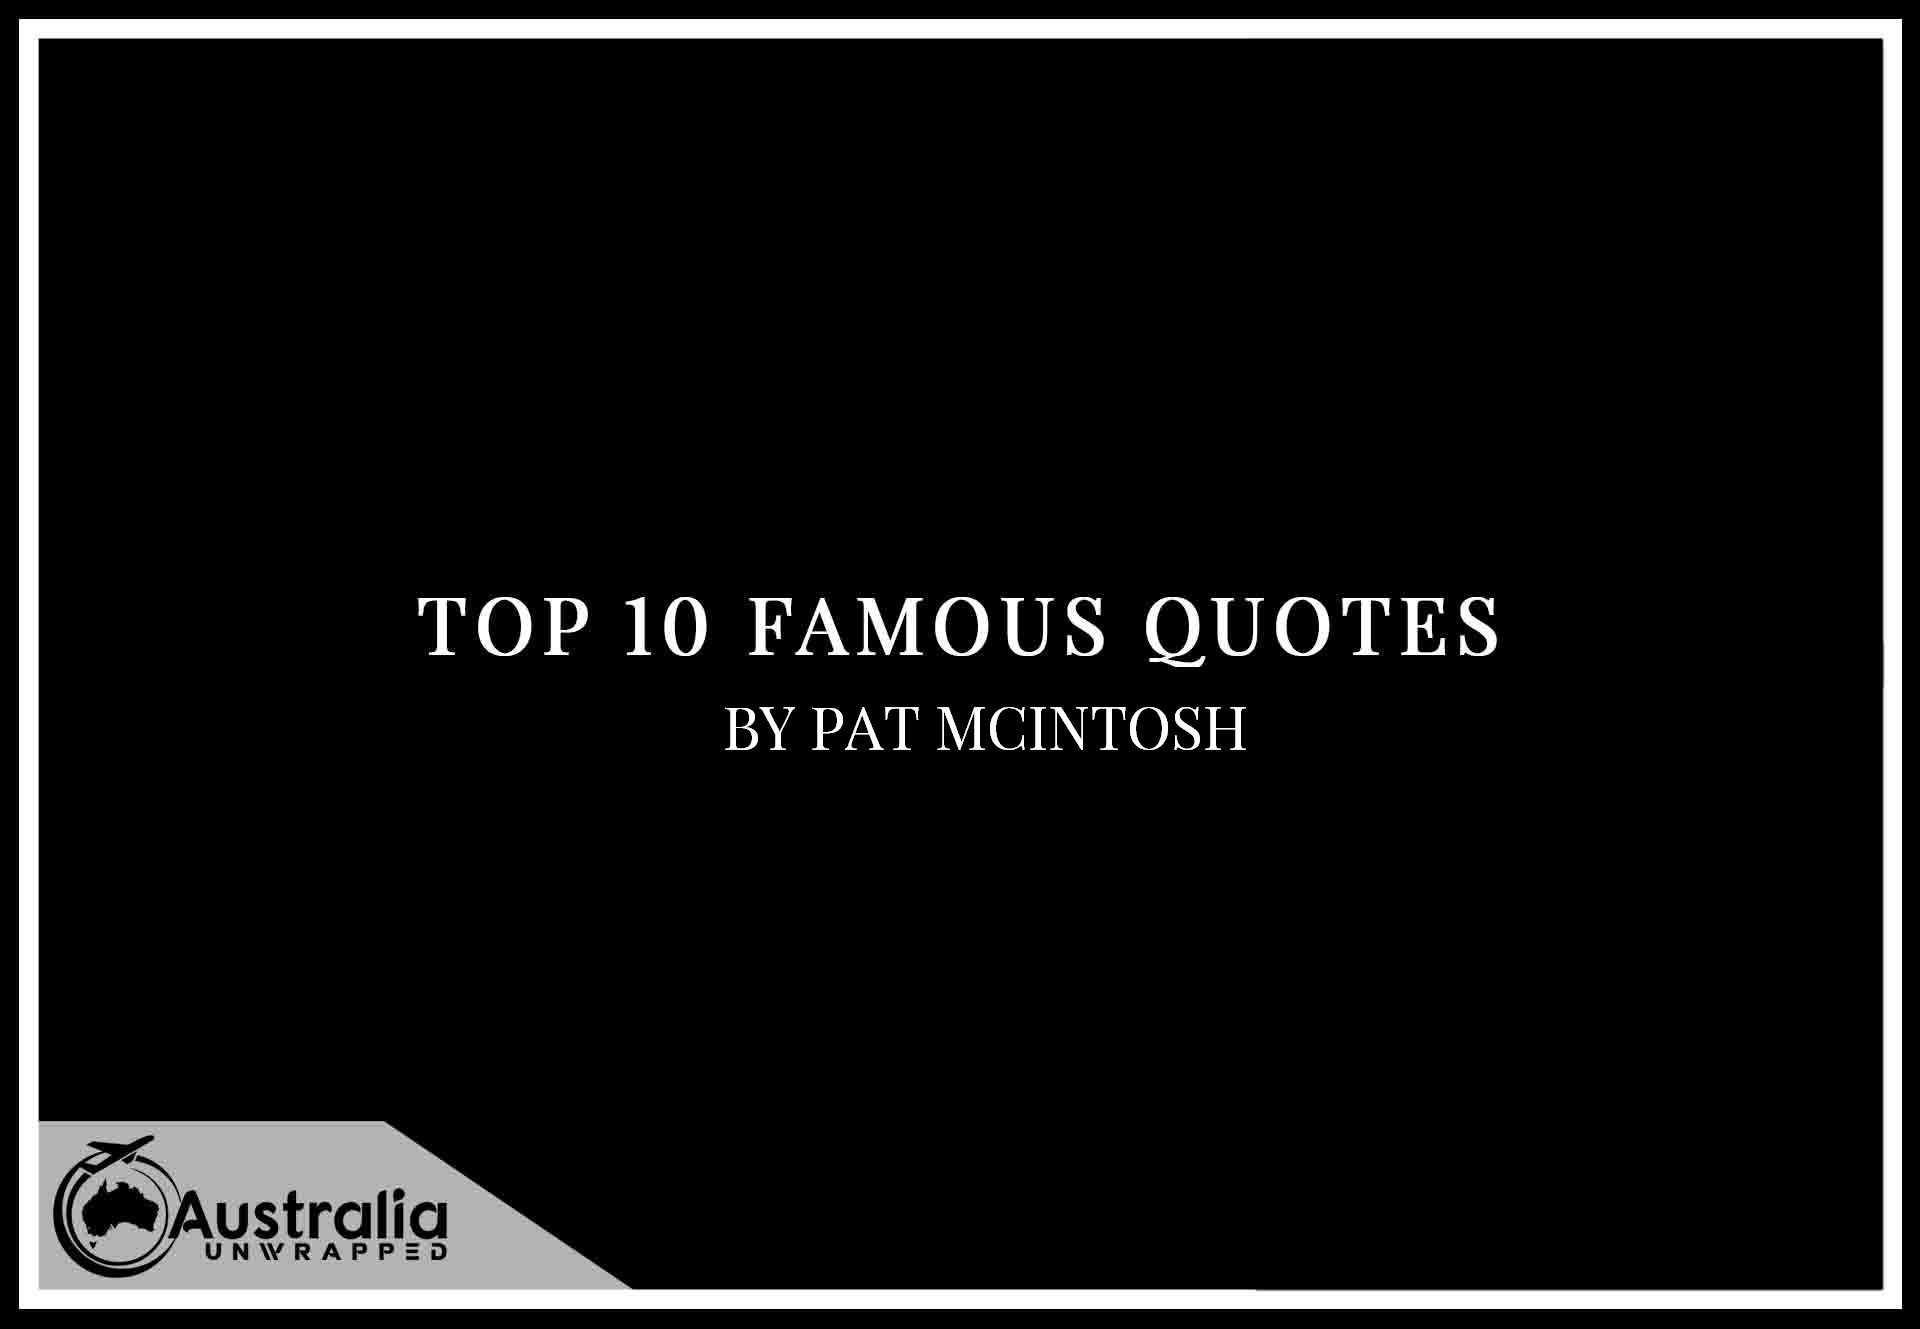 Top 10 Famous Quotes by Author Pat McIntosh